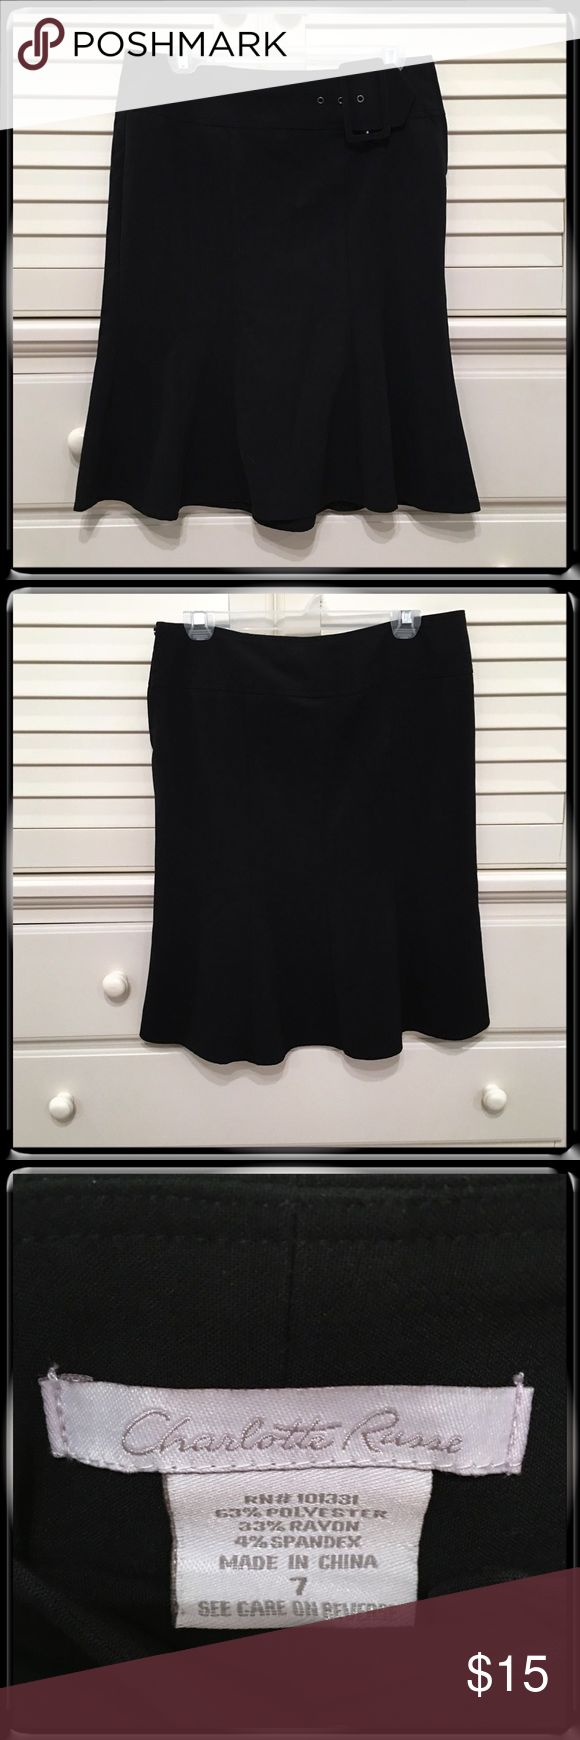 Charlotte Russe Black Dress Skirt Charlotte Russe black skirt. So versatile. Faux Buckle. Zip closure. Can be worn for work or play. Excellent condition!  Size 7. Charlotte Russe Skirts